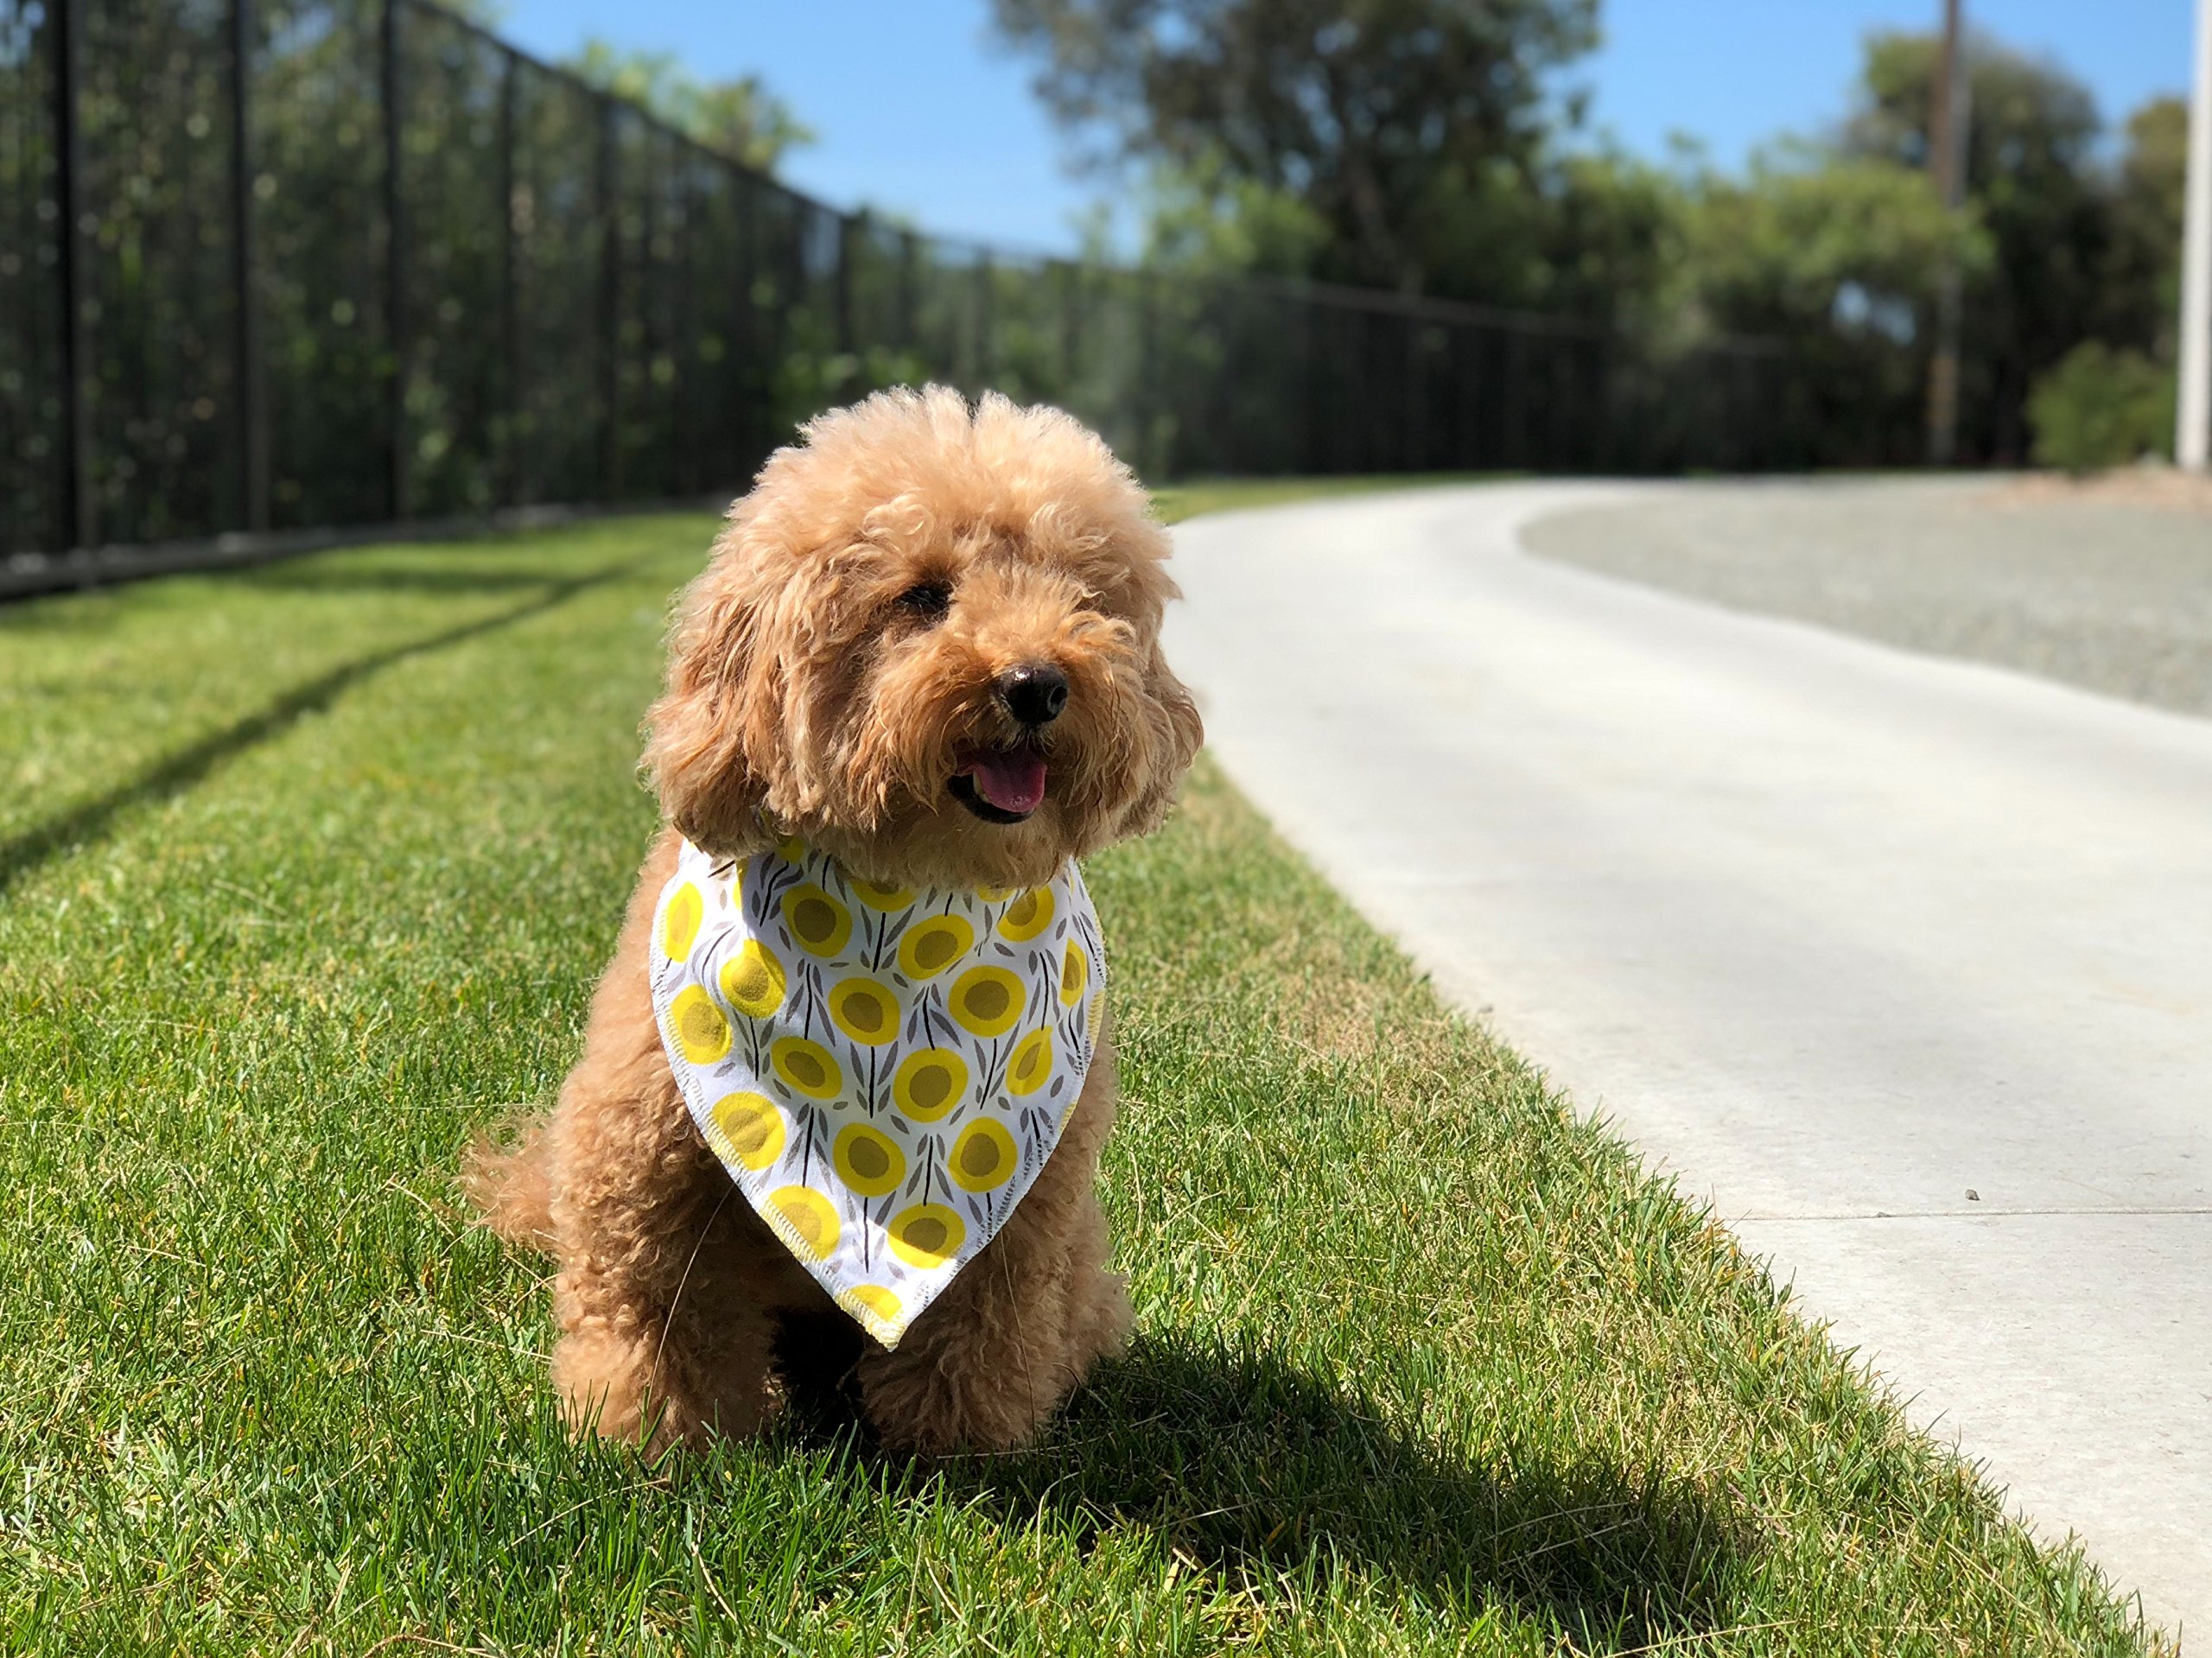 Paws n' Play 4 Piece Fun Bright Color Snap-On Pet Dog Bandana Triangle Scarf Bibs - Accessories for Dogs, Puppy, Cats - Small/Medium, Soft Cotton (Dewshine Poppy) by Paws n' Play (Image #7)